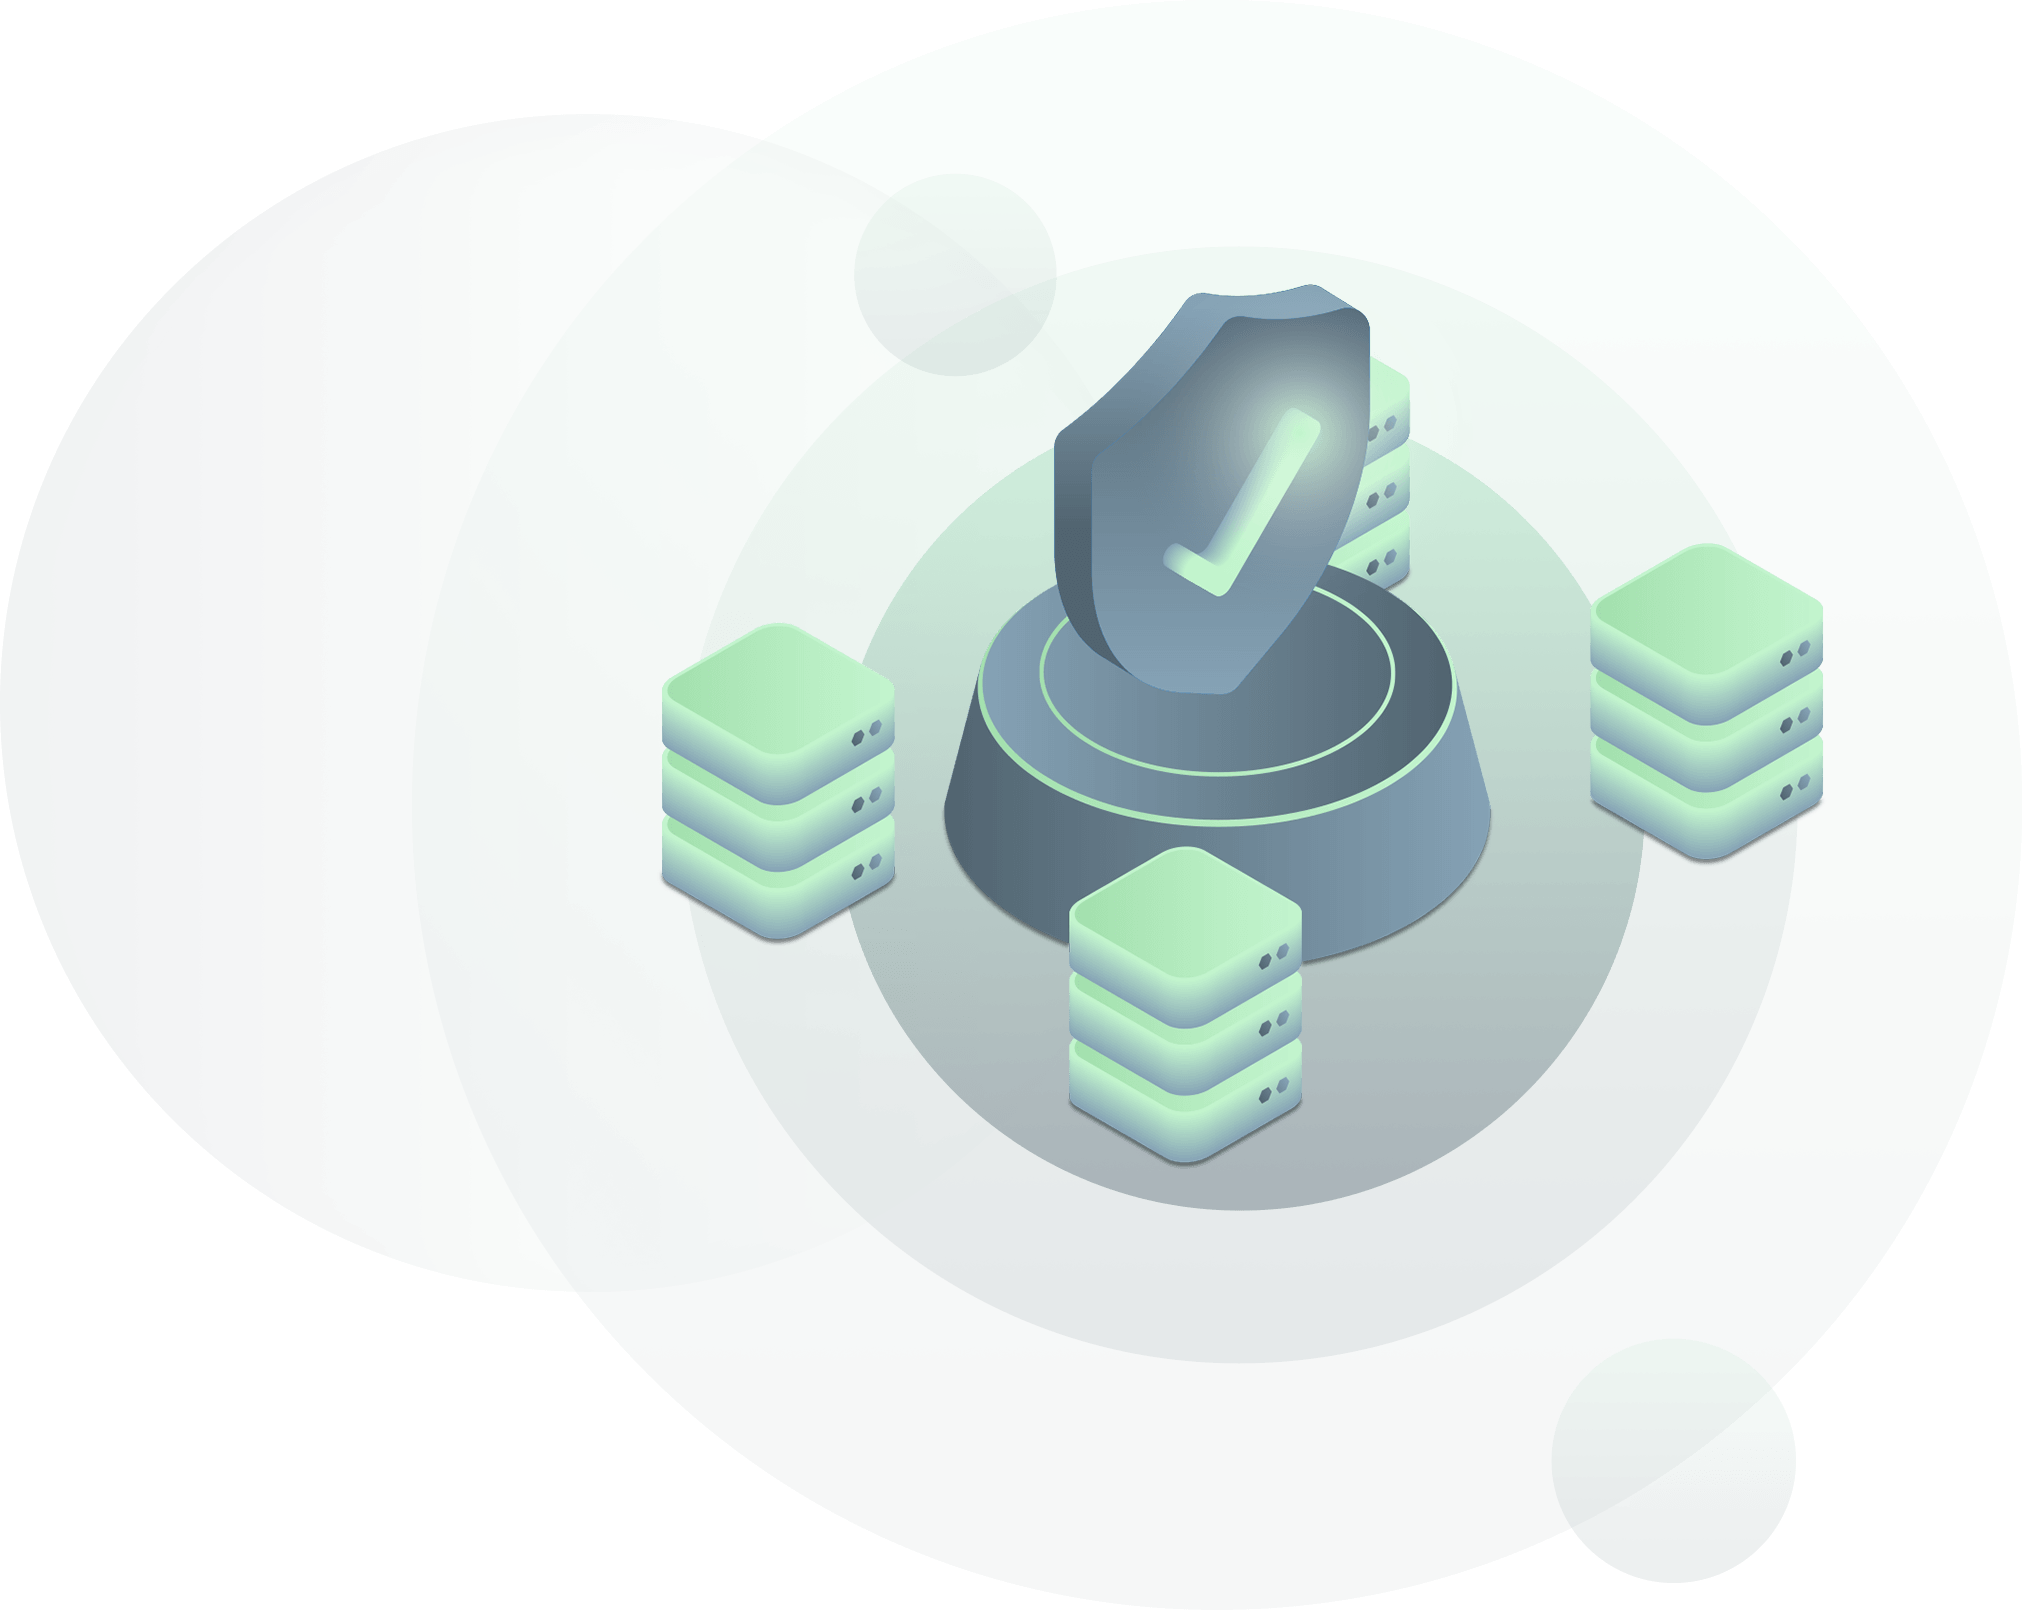 data center illustration with checkmark shield